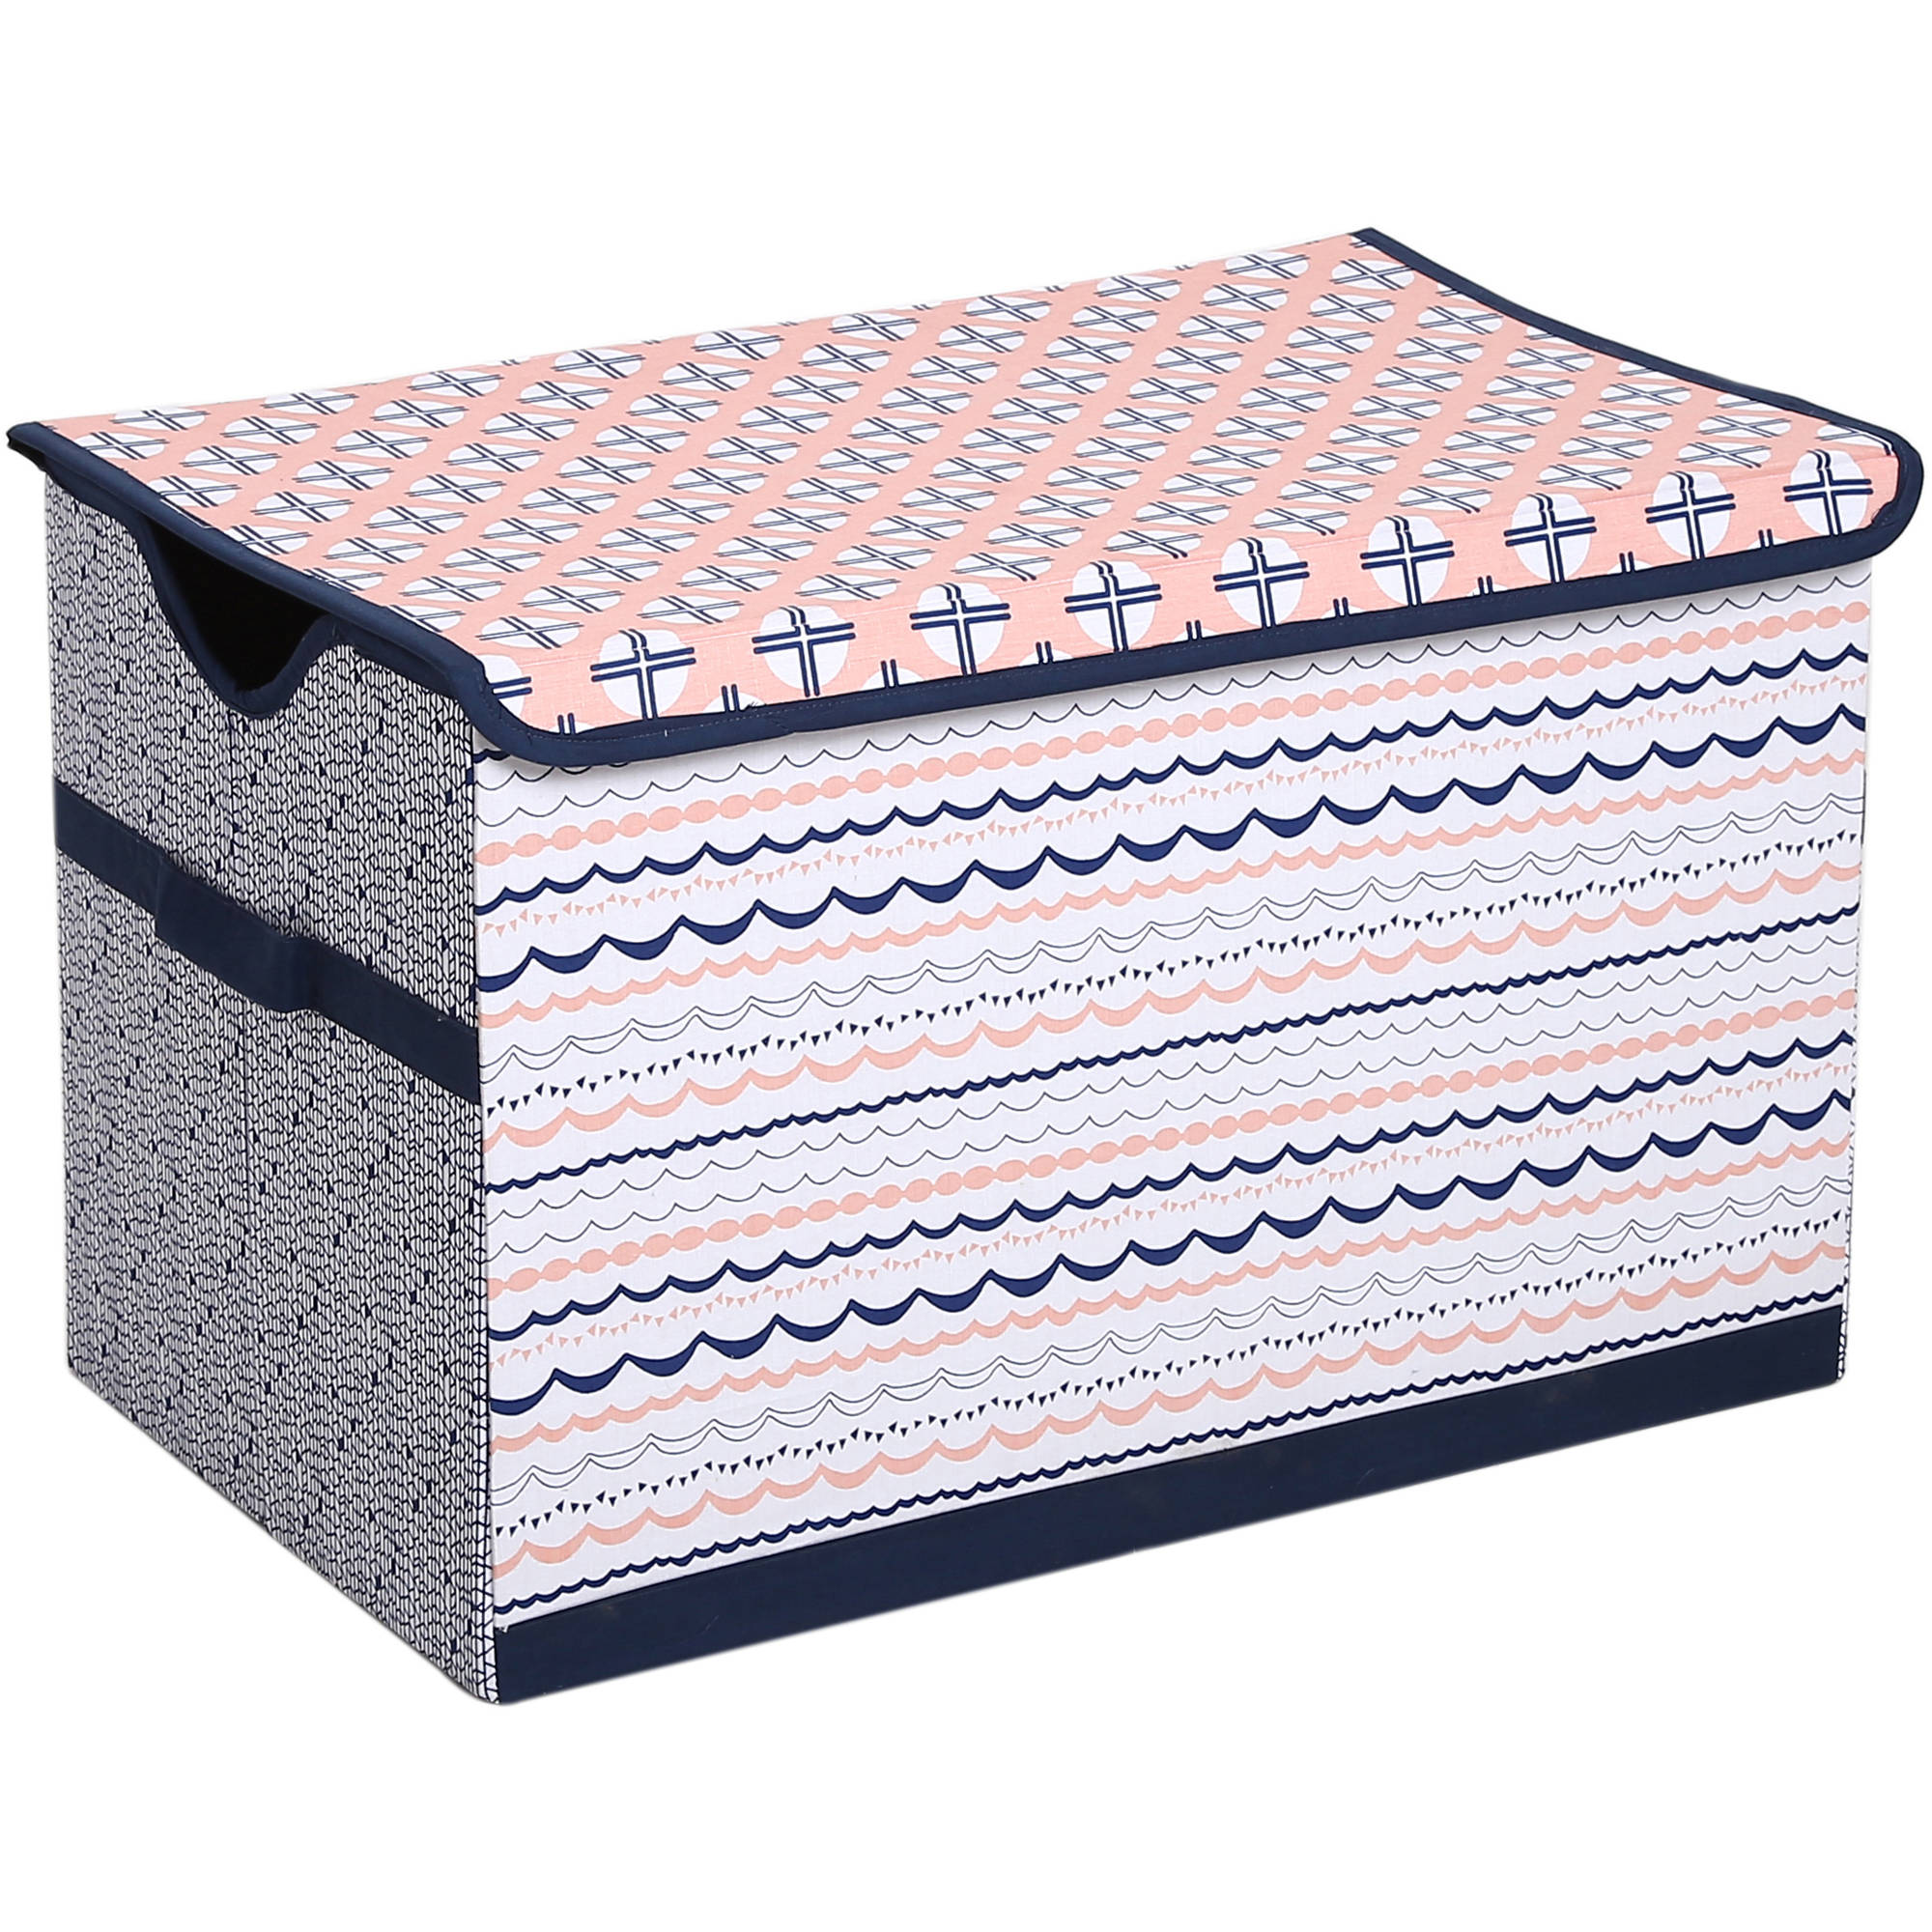 Bacati - Tribal Olivia Coral/NavyCotton Percale Fabric covered Storage, Toy Chest, 24.5 L x 15 W x 14 H inches